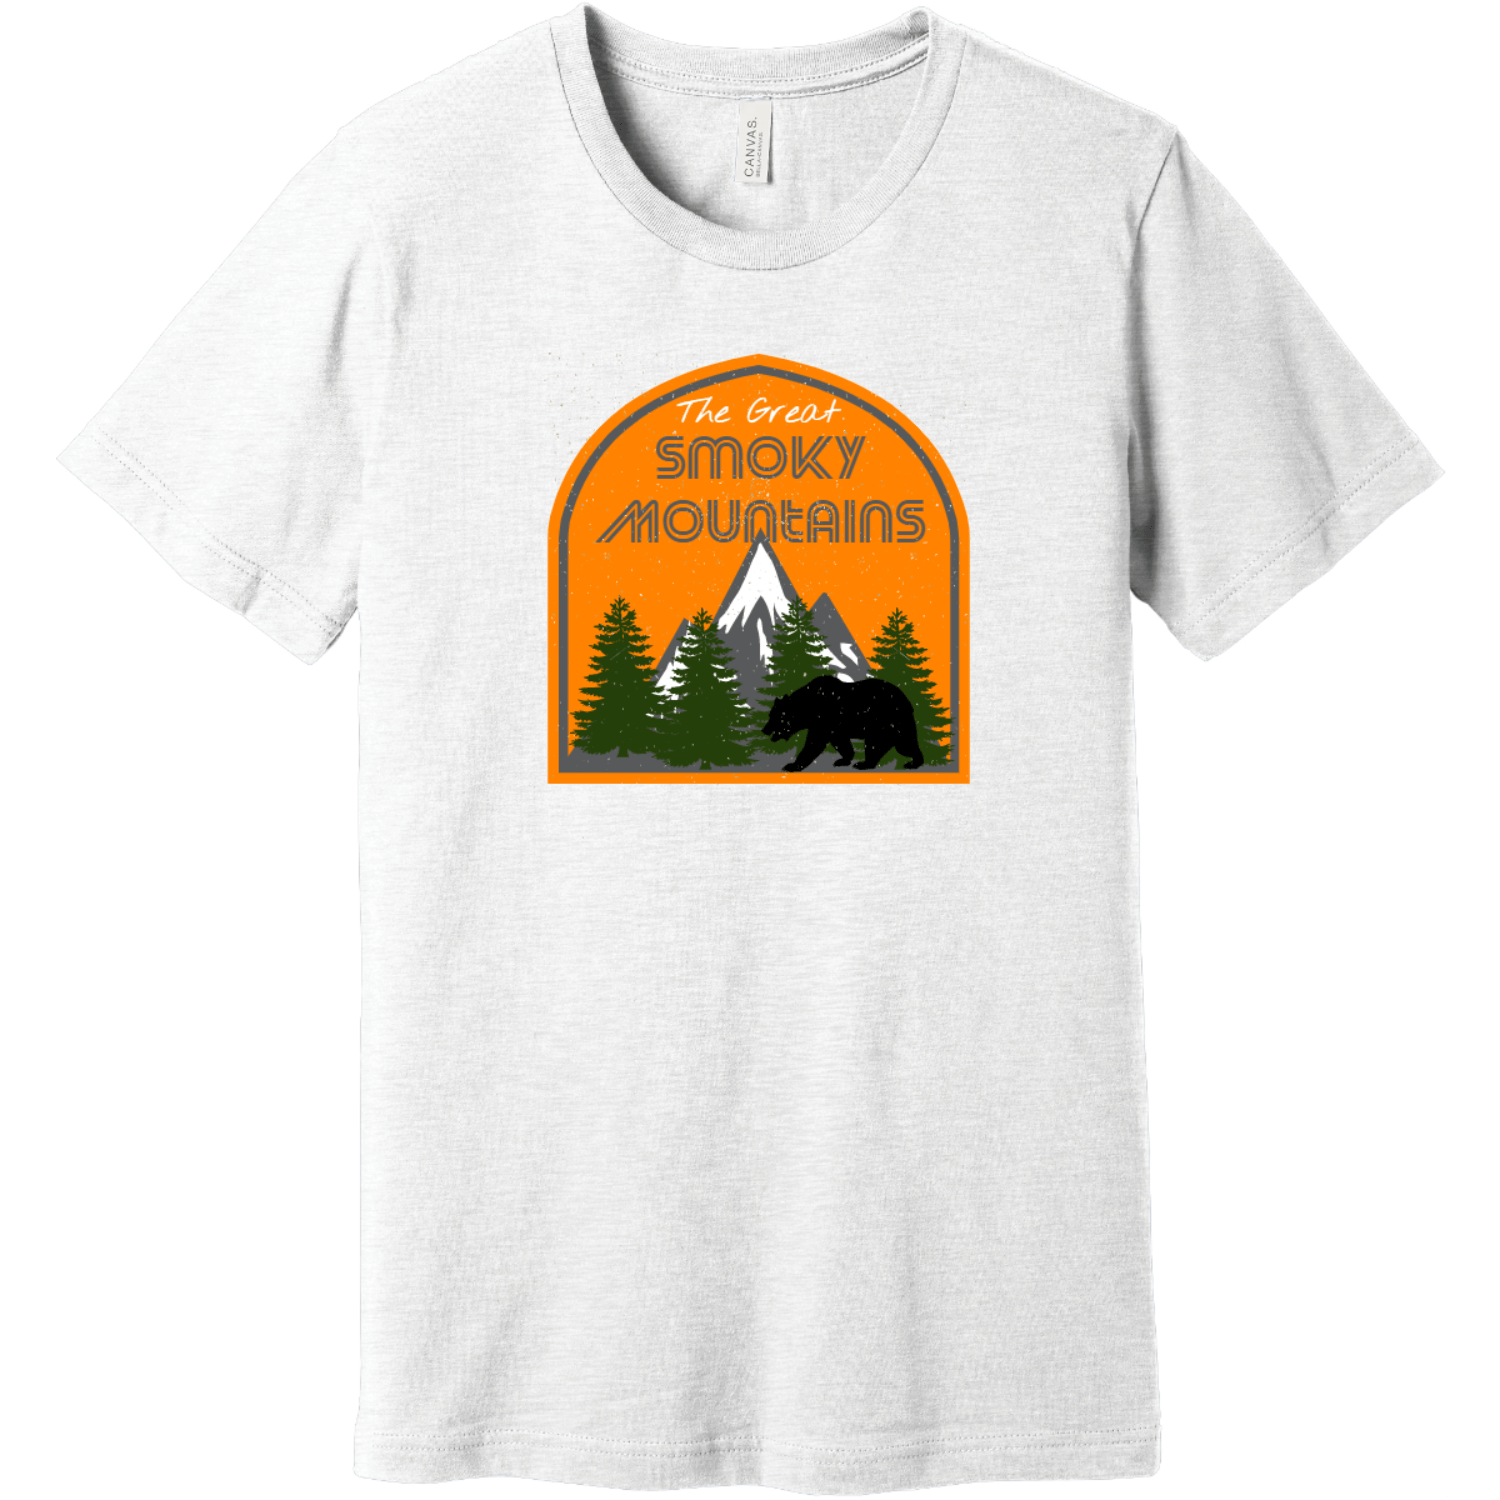 The Great Smoky Mountains T-Shirt White Bella Canvas Unisex Tee BC3001